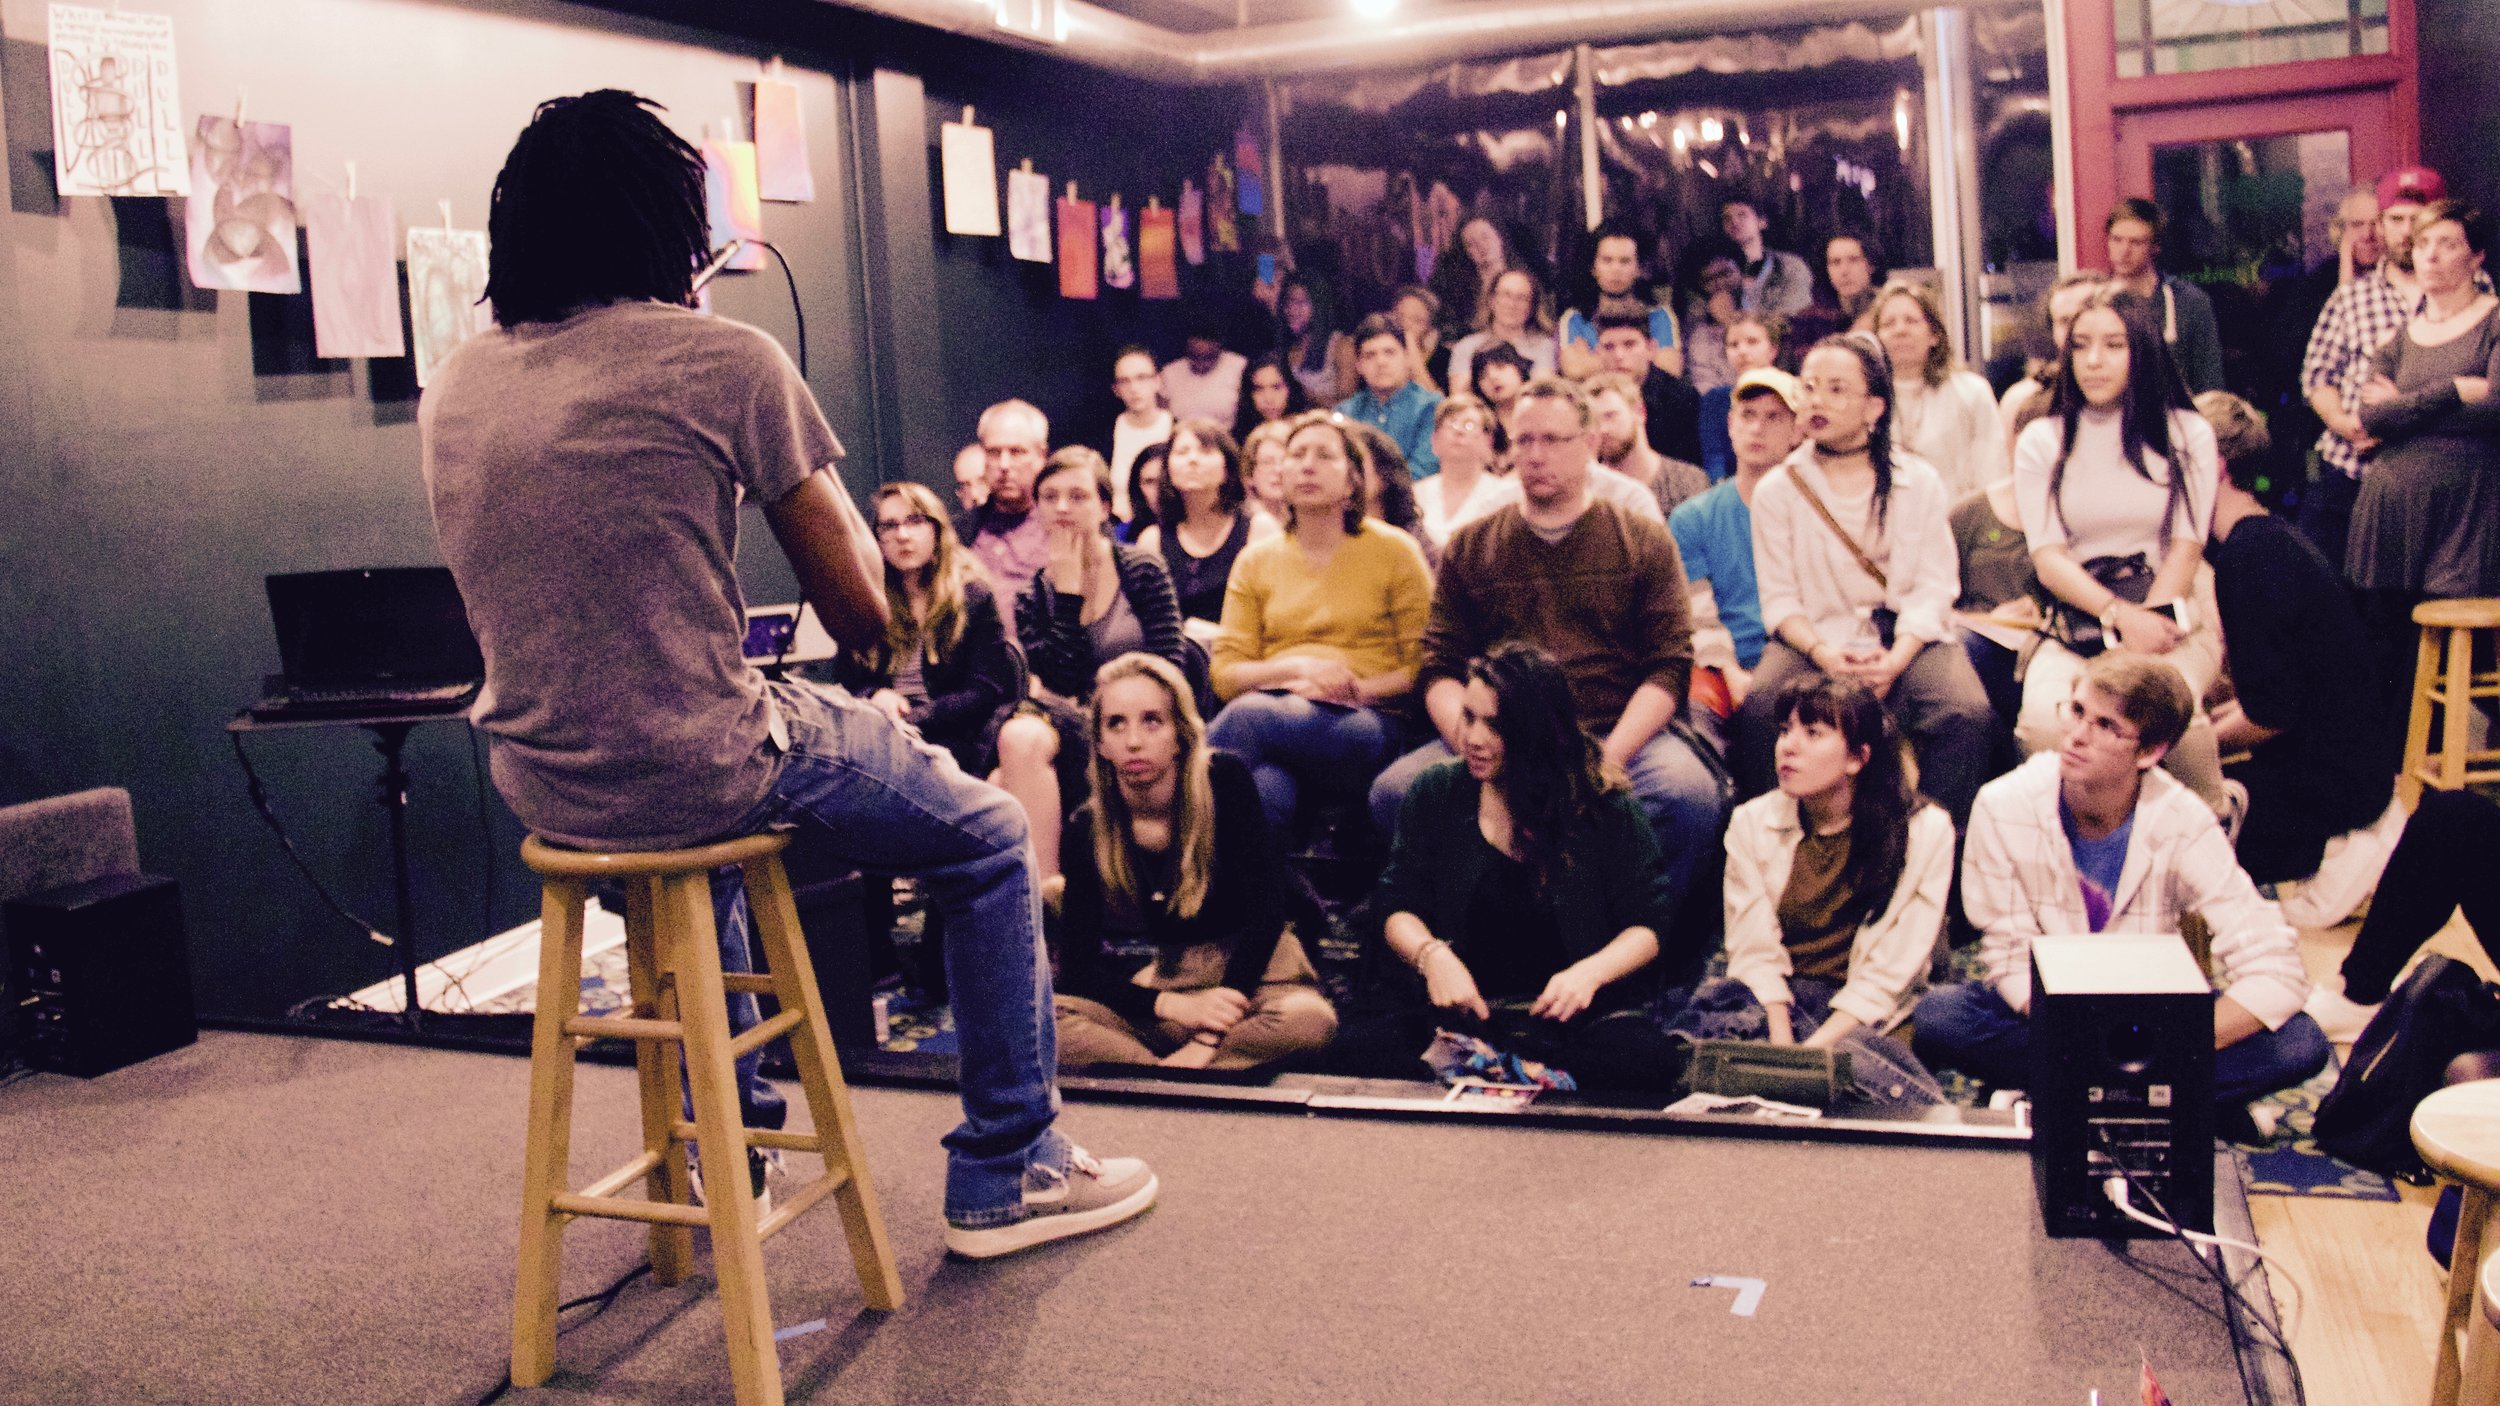 Spoken word artist performing in front of captive audience